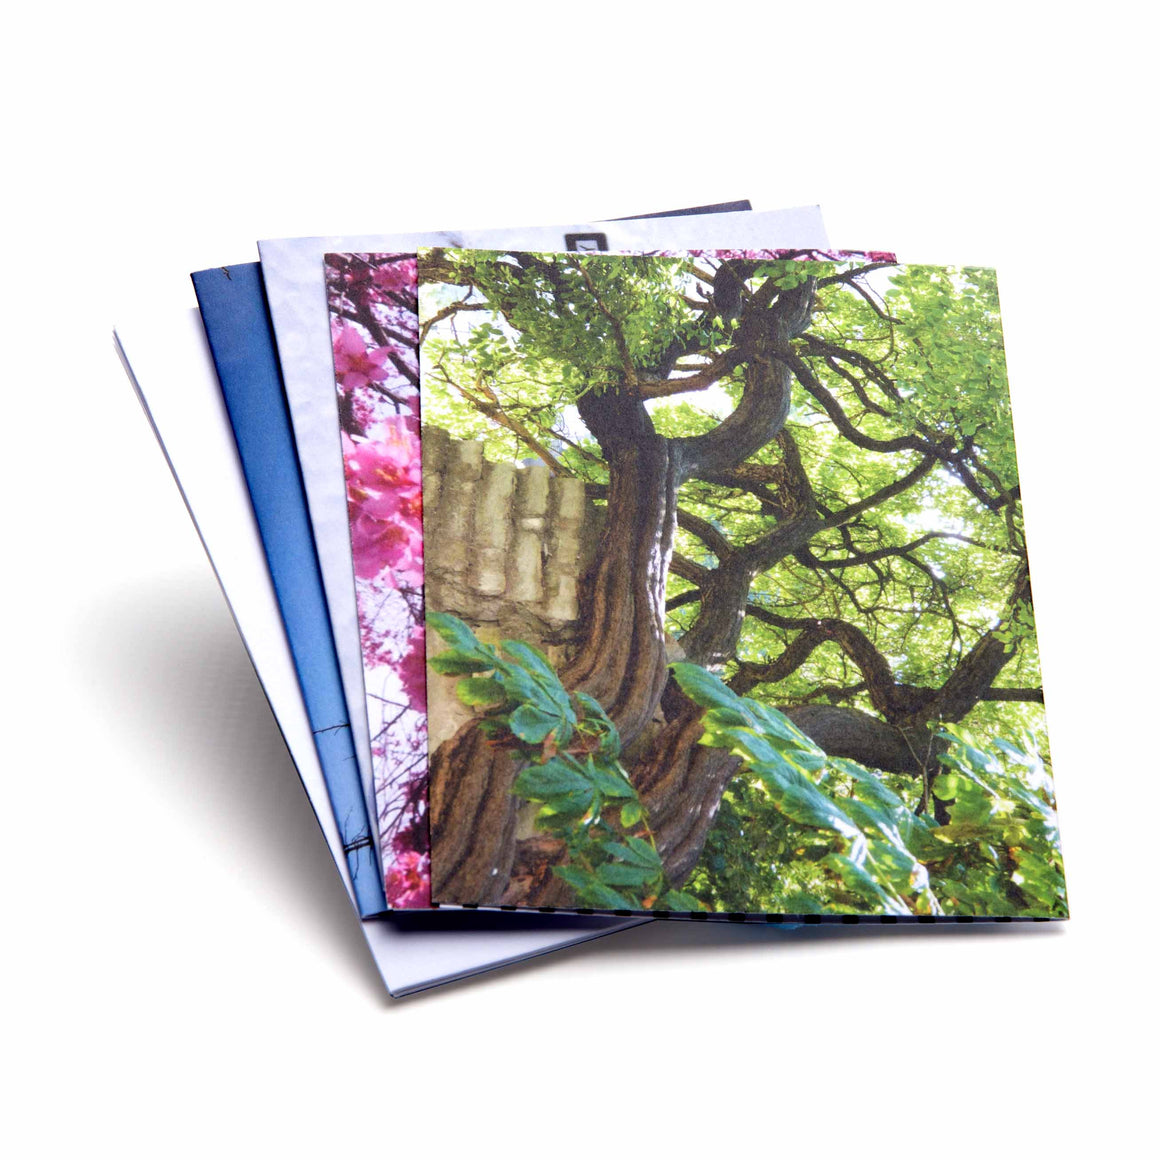 Greeting Cards with Envelopes product image - included with Dr. Don's Care Packages Cancer Patient Care Package.